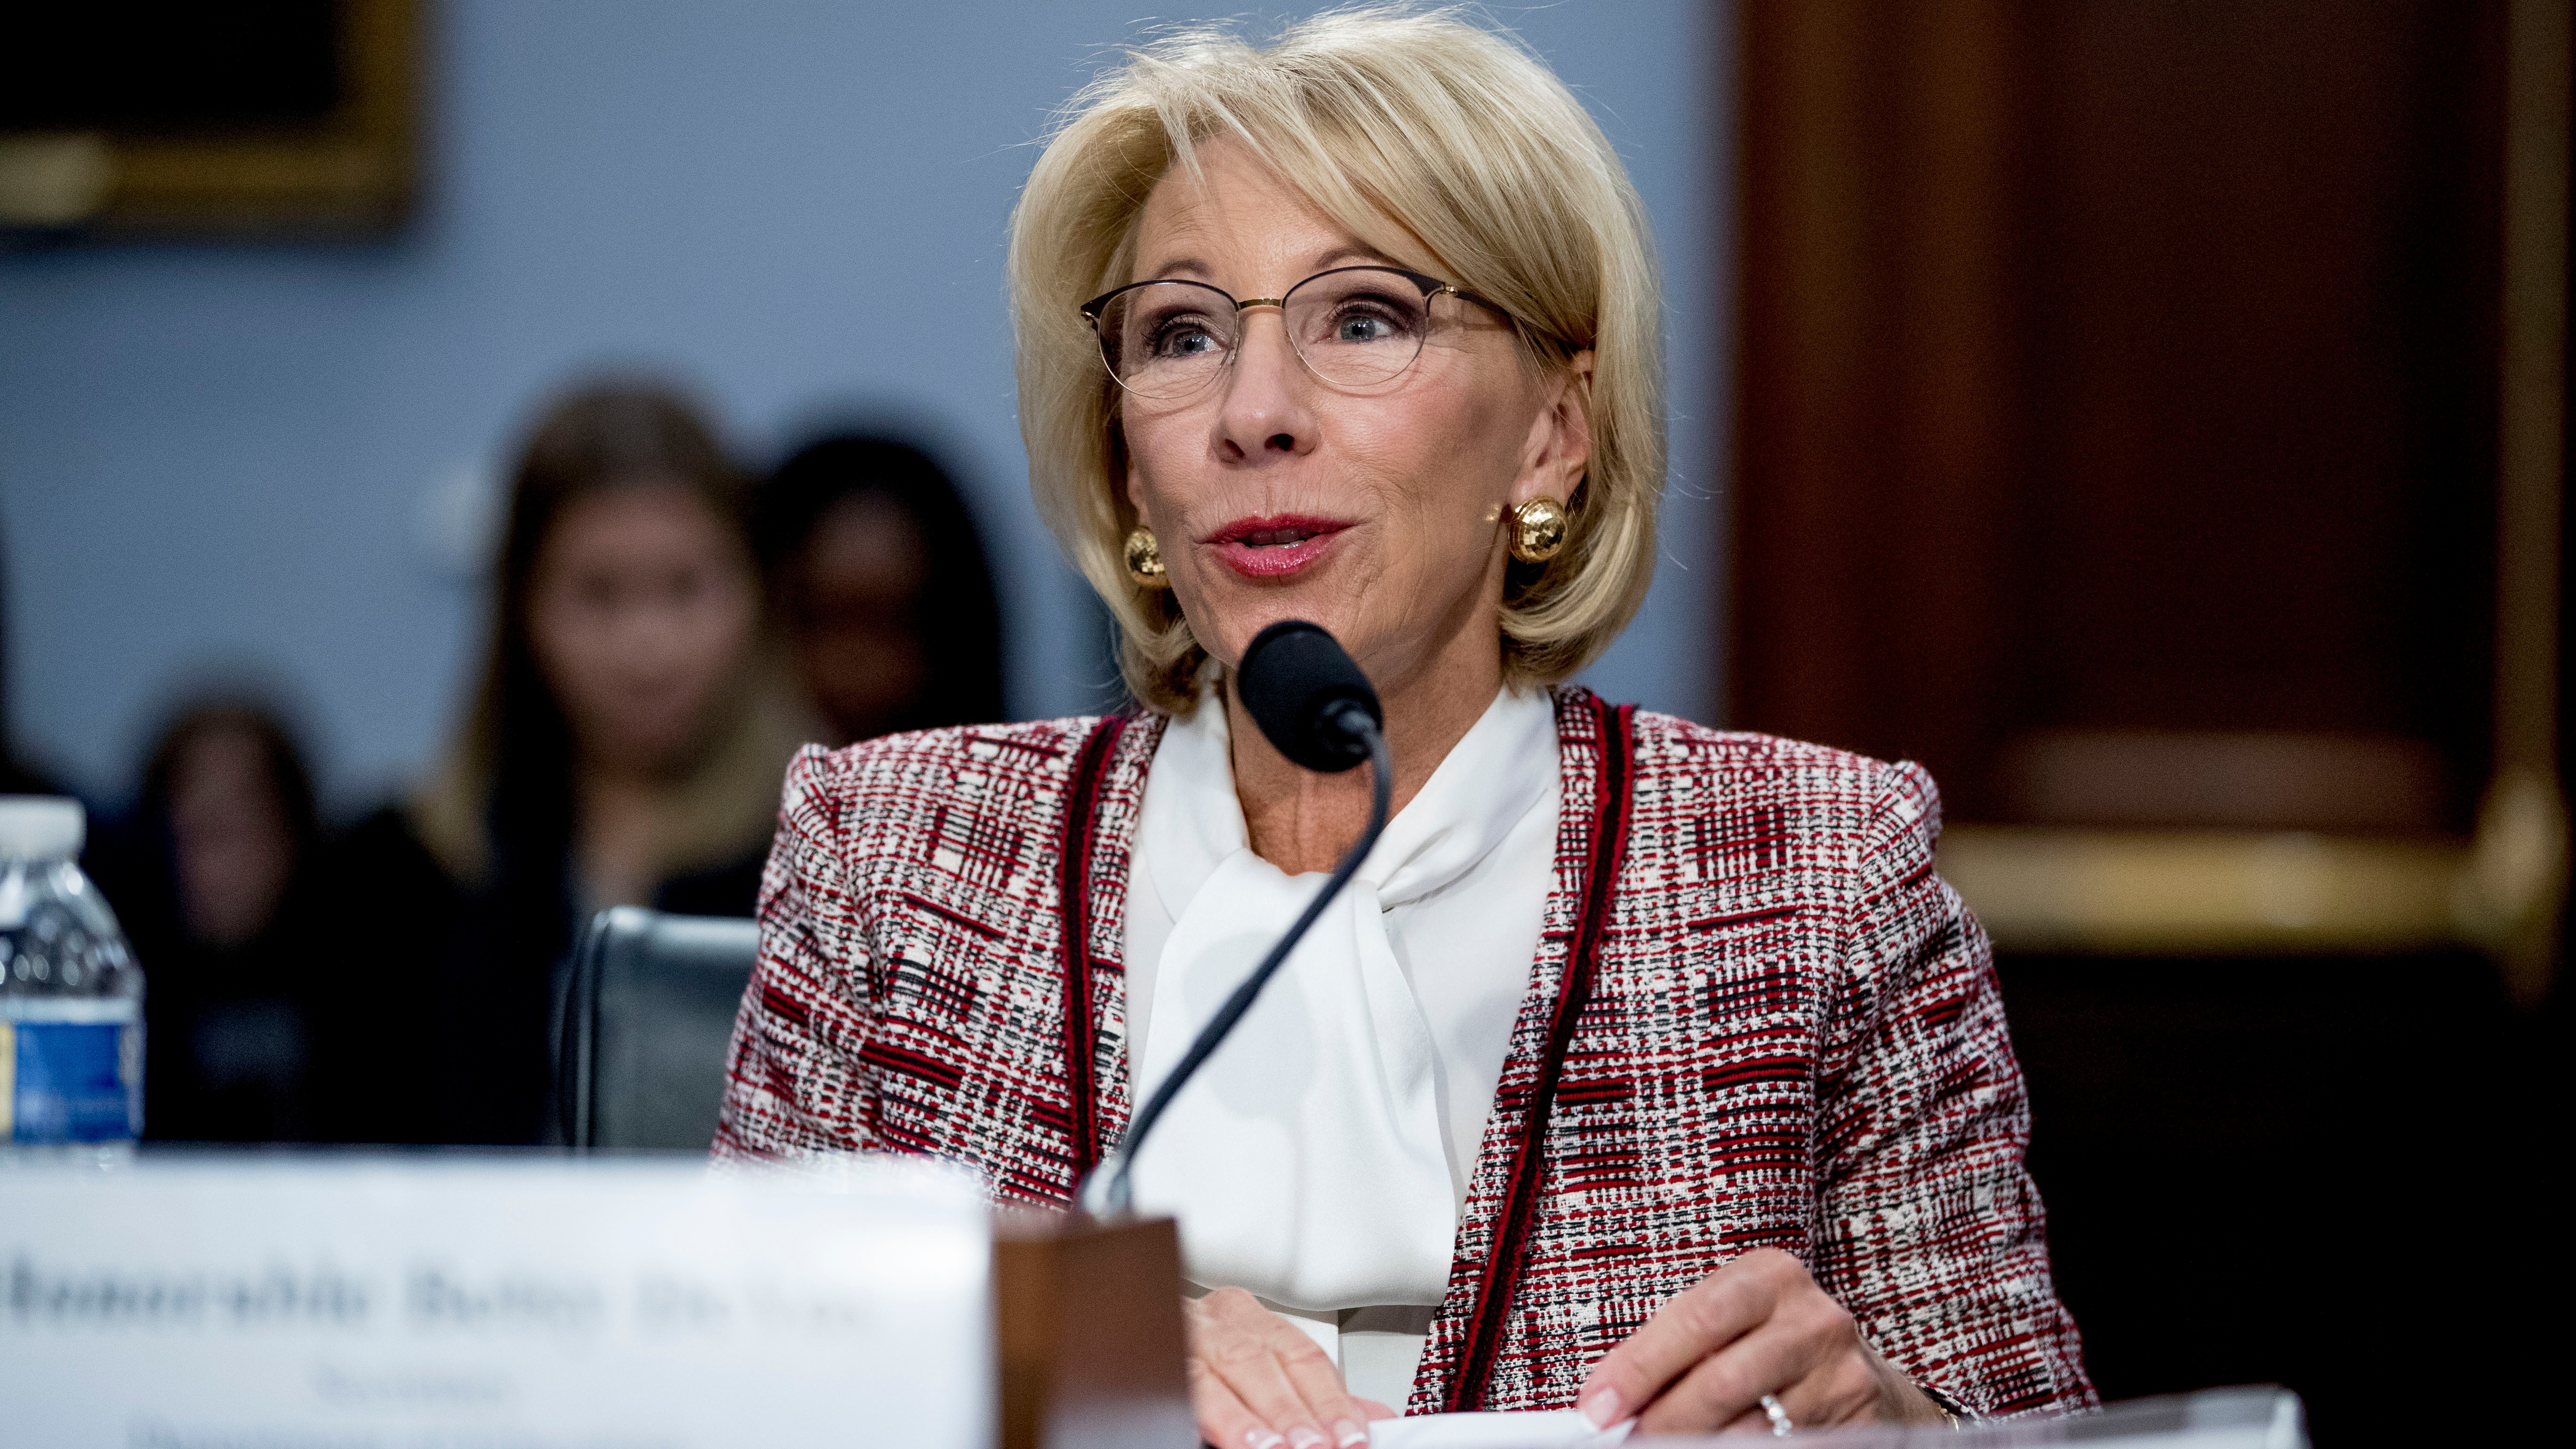 Betsy DeVos wants to gut funding for the Special Olympics